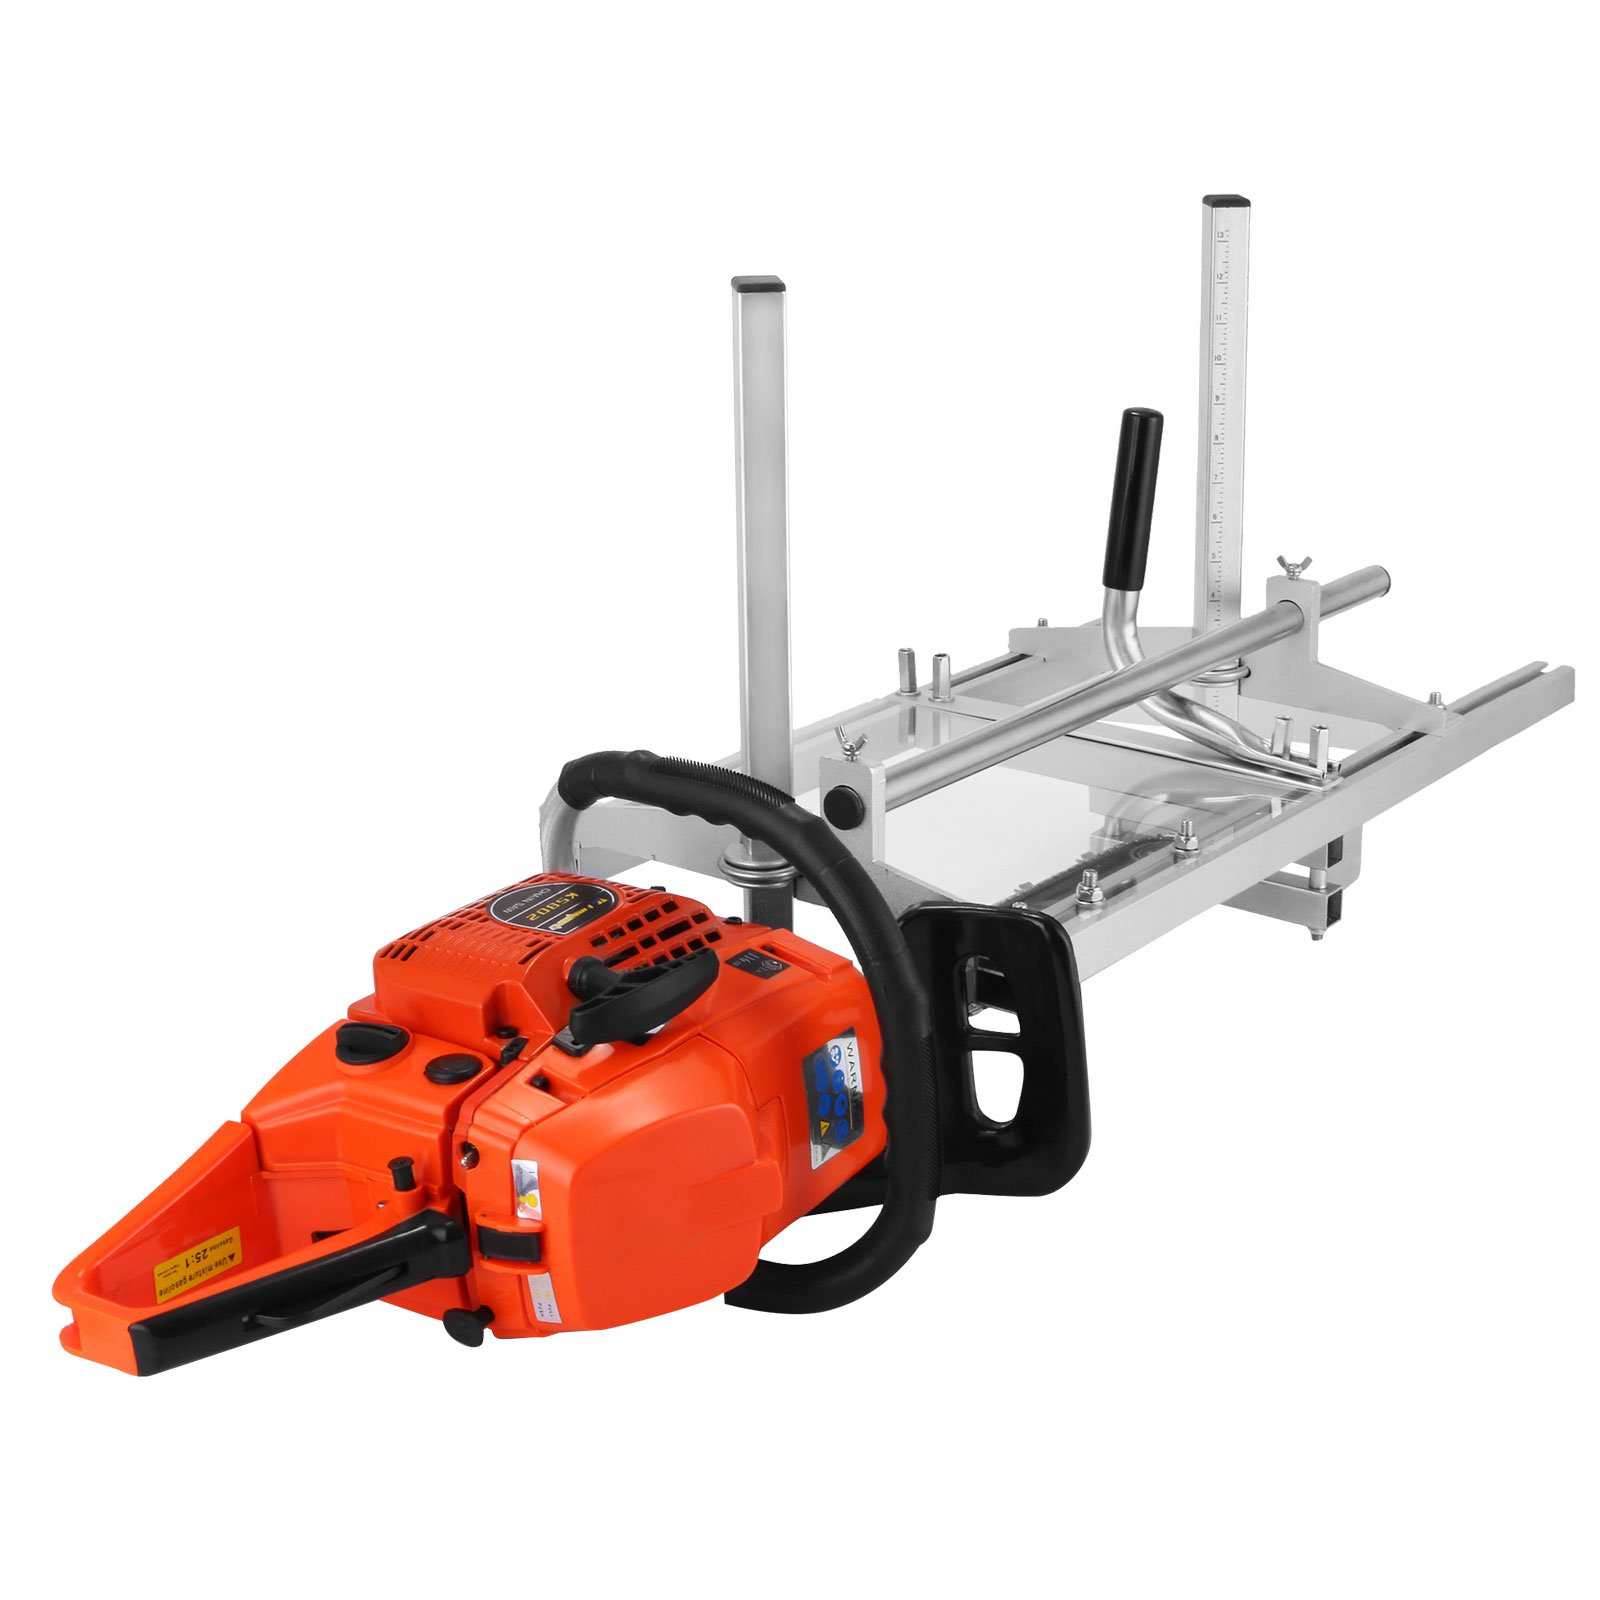 """LOVSHARE 14 Inch - 36 Inch Saw Mill Portable Chain Sawmill Attachment Planking Milling Cutting Guide Bar Fits for Chainsaw Bars up to 14""""-36"""" (Chainsaw not Included)"""